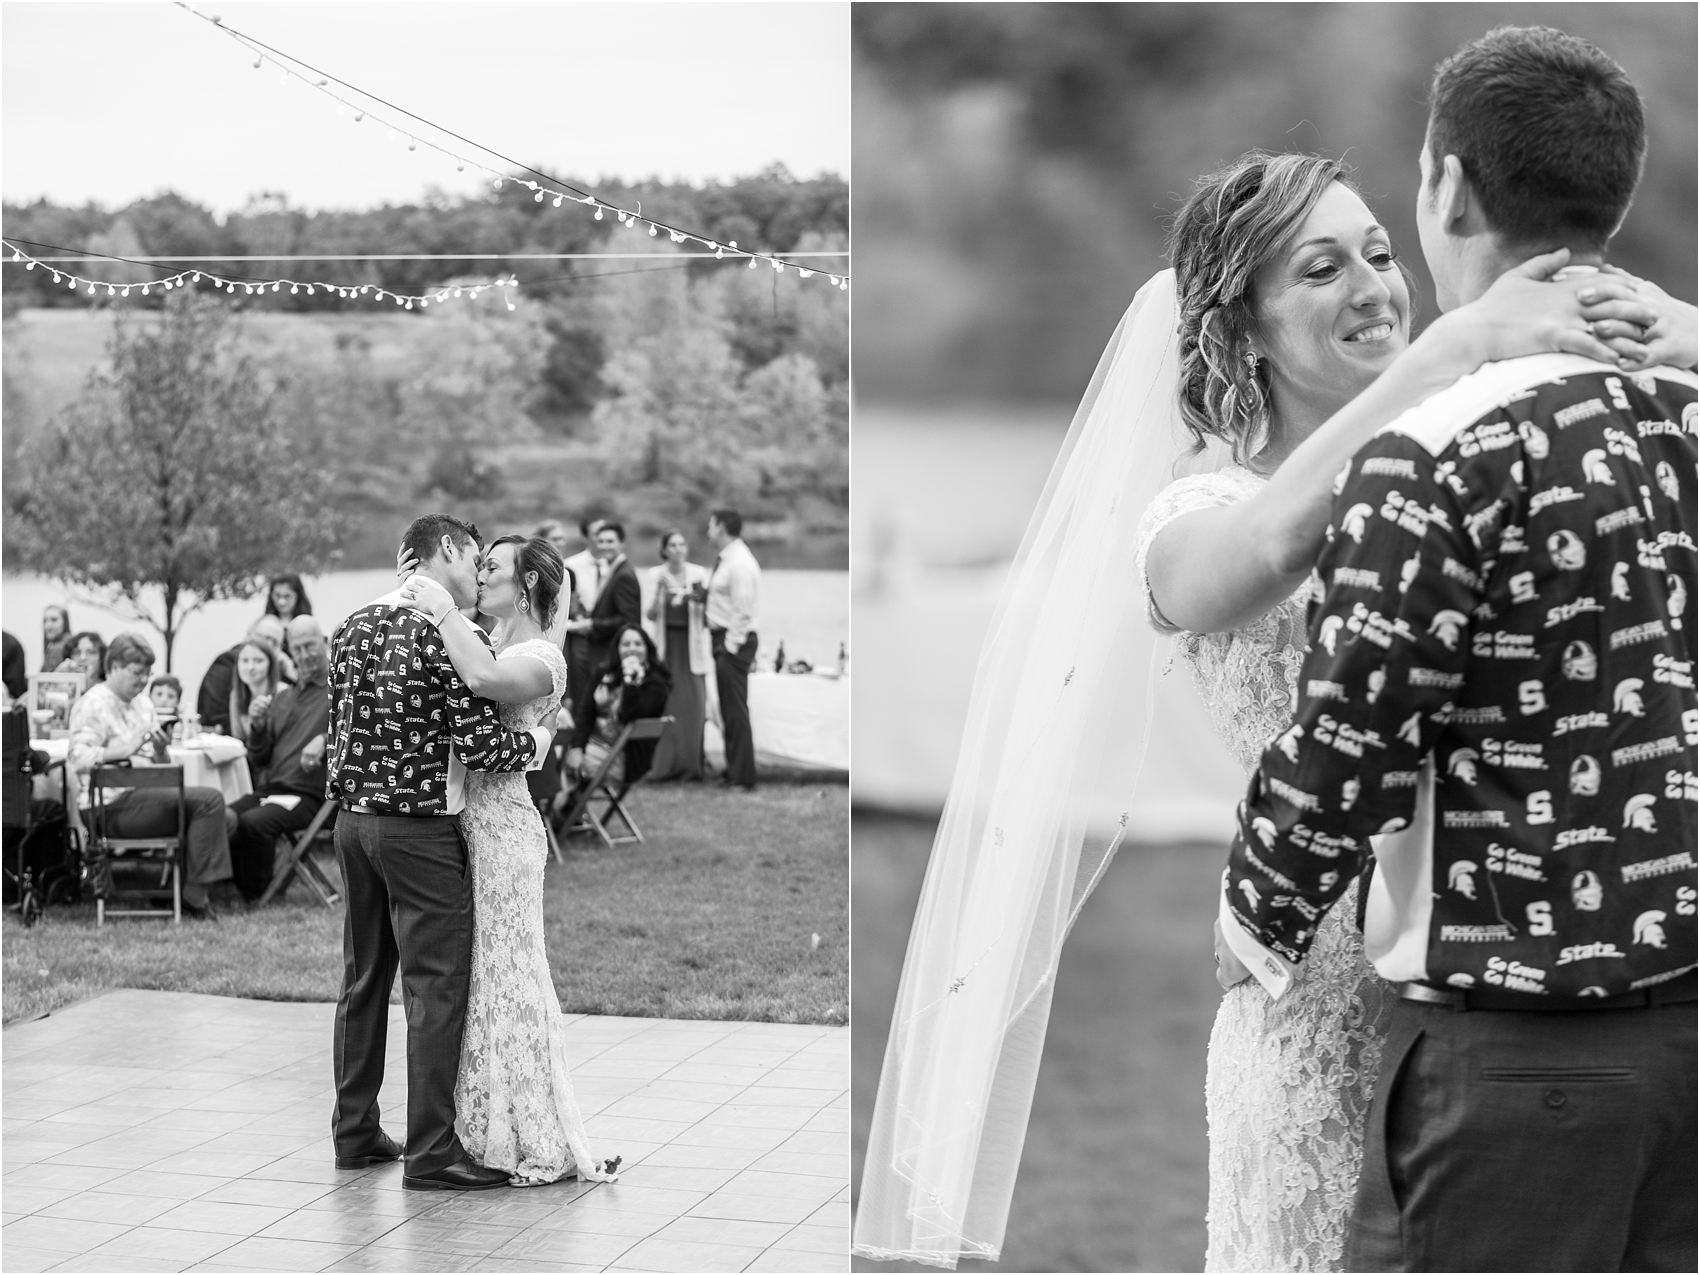 romantic-intimate-backyard-wedding-photos-at-private-estate-in-ann-arbor-mi-by-courtney-carolyn-photography_0141.jpg